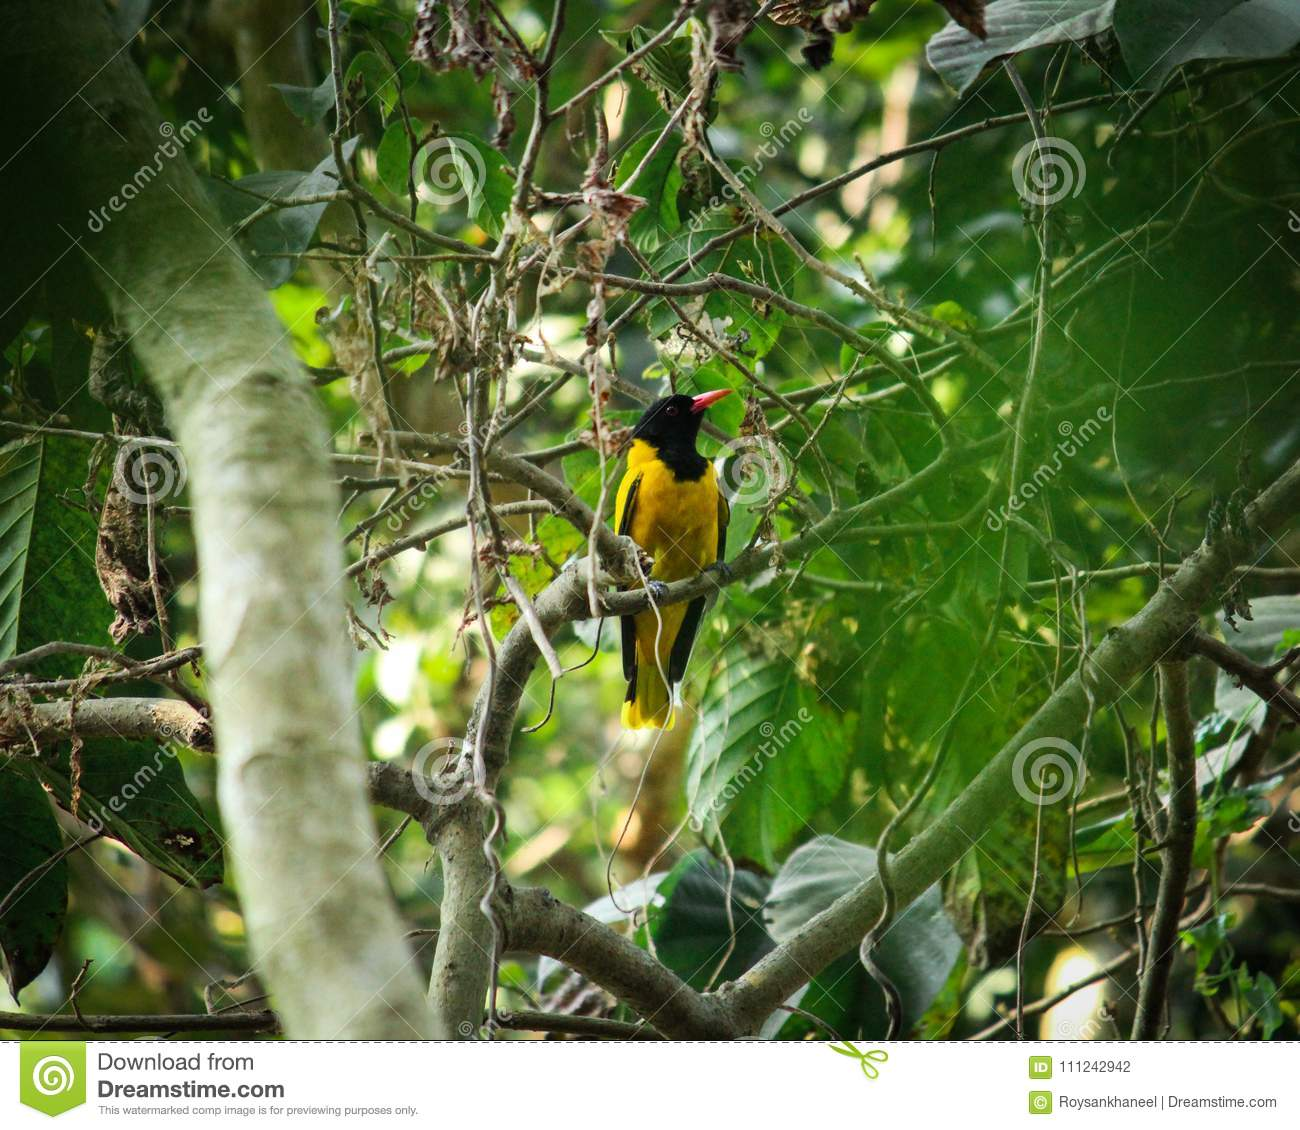 A Black Hooded Oriole Searching For Food In The Woods Stock Photo